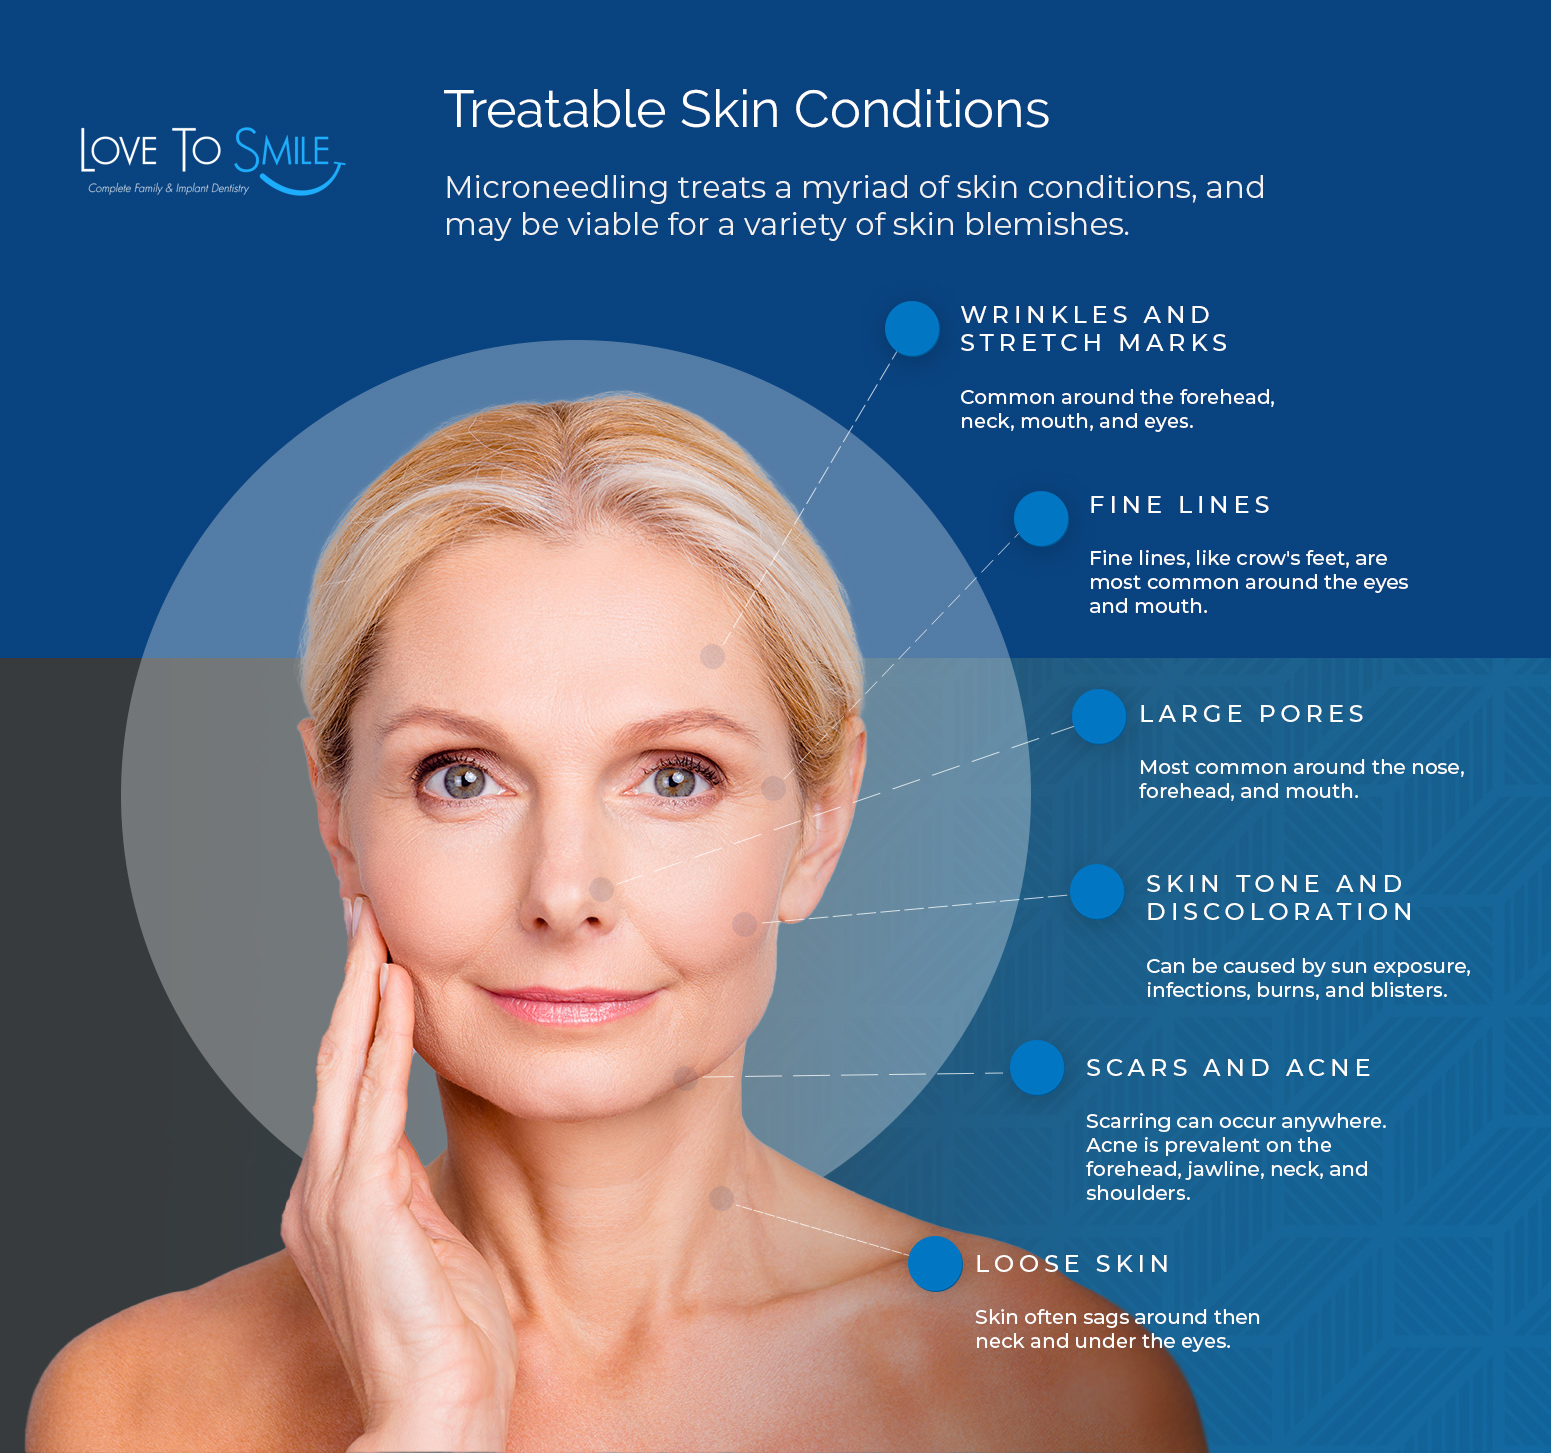 Treatable Skin Conditions Infographic